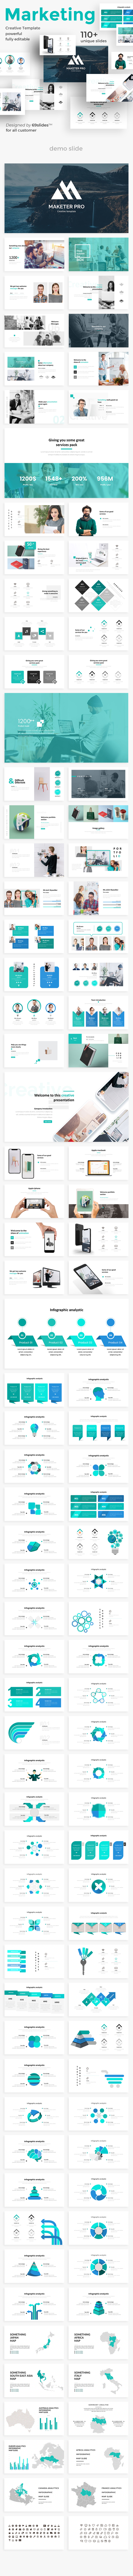 Marketer Pro Multipurpose Powerpoint Template - Creative PowerPoint Templates